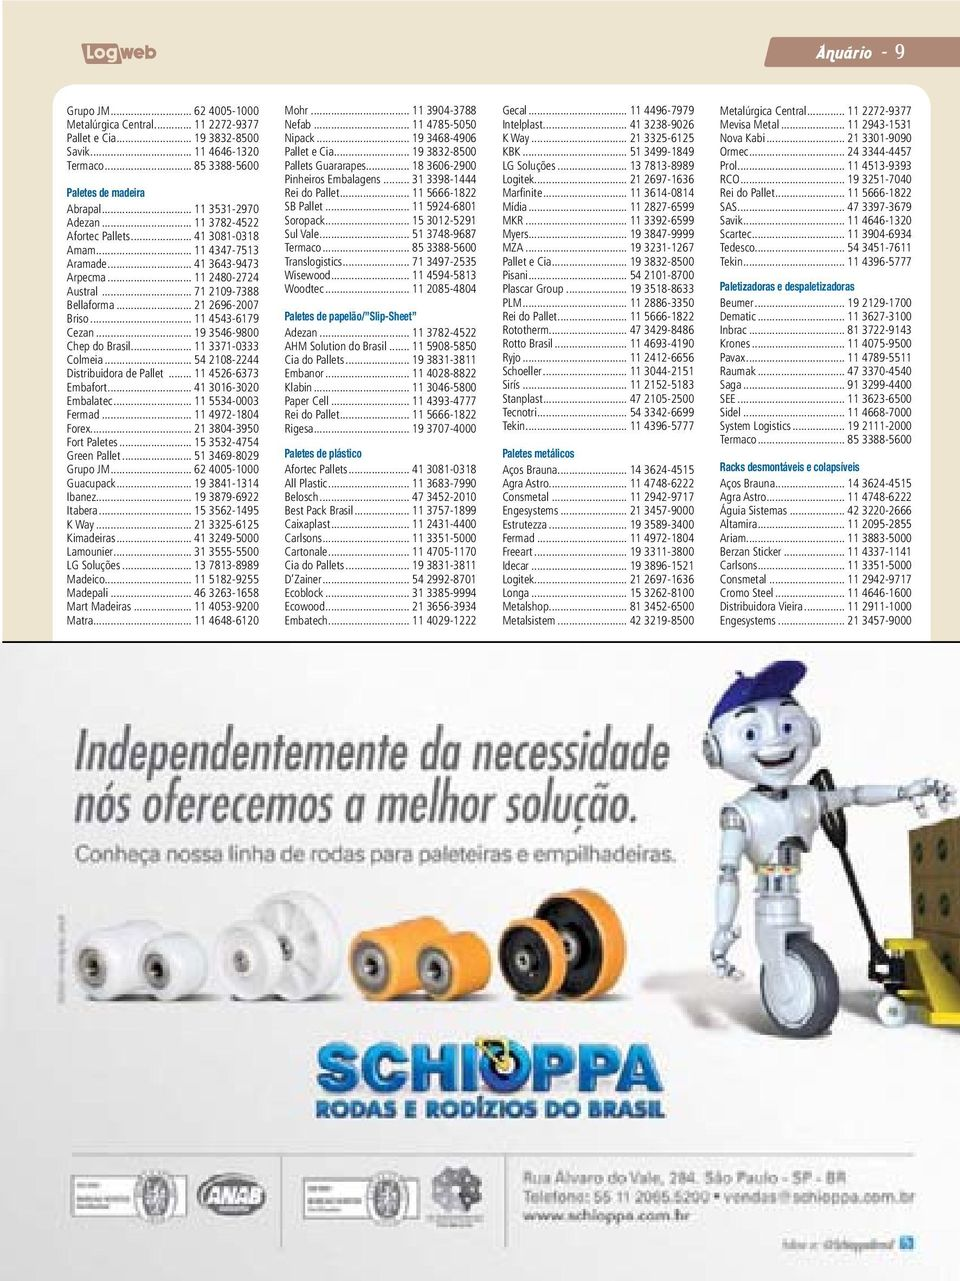 .. 19 3546-9800 Chep do Brasil... 11 3371-0333 Colmeia... 54 2108-2244 Distribuidora de Pallet... 11 4526-6373 Embafort... 41 3016-3020 Embalatec... 11 5534-0003 Fermad... 11 4972-1804 Forex.